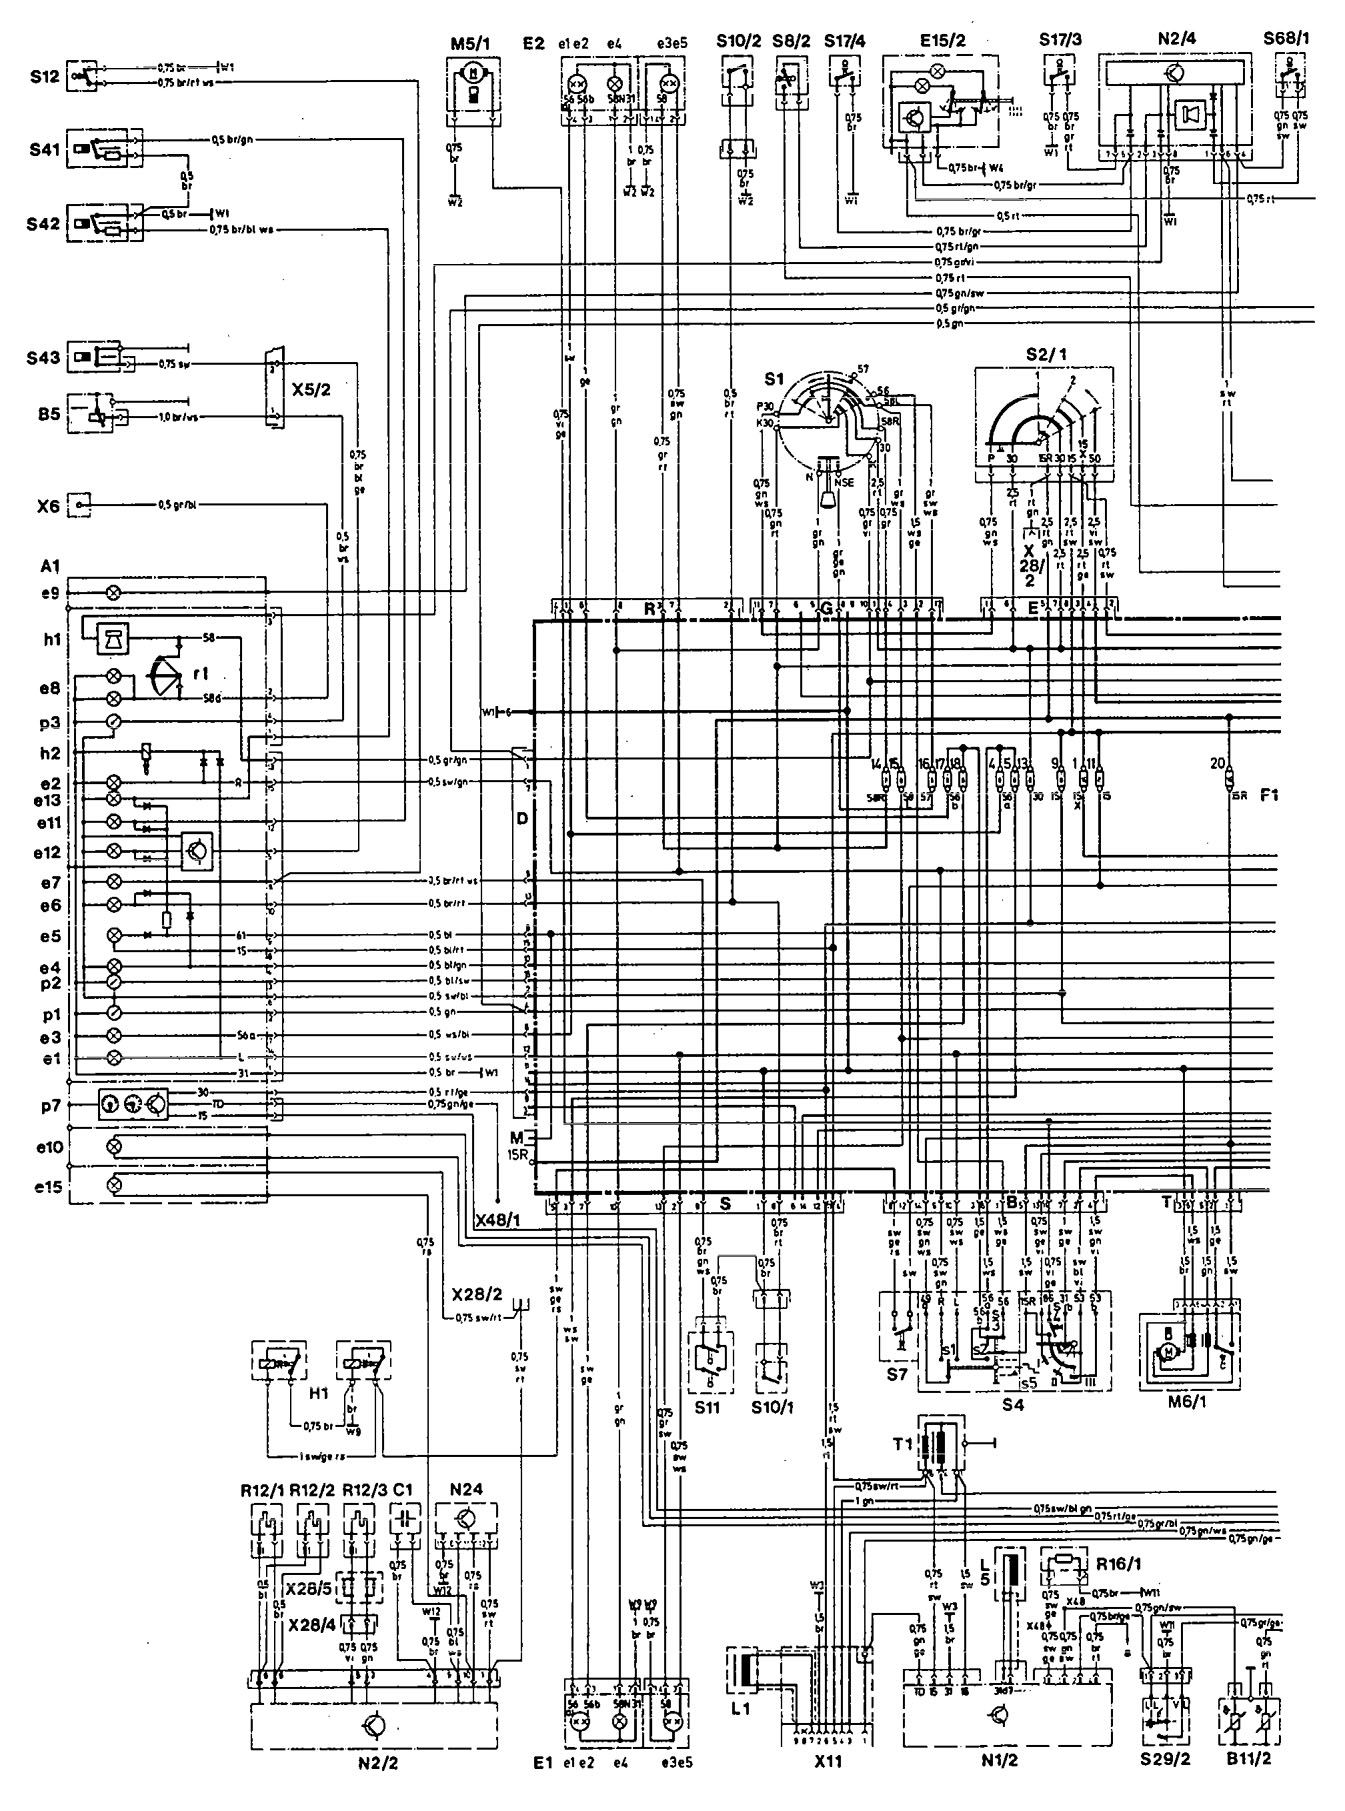 1993 mercedes 190e fuse box location wiring diagram Mercedes Chassis Diagram 1993 mercedes 190e fuse box location wiring library